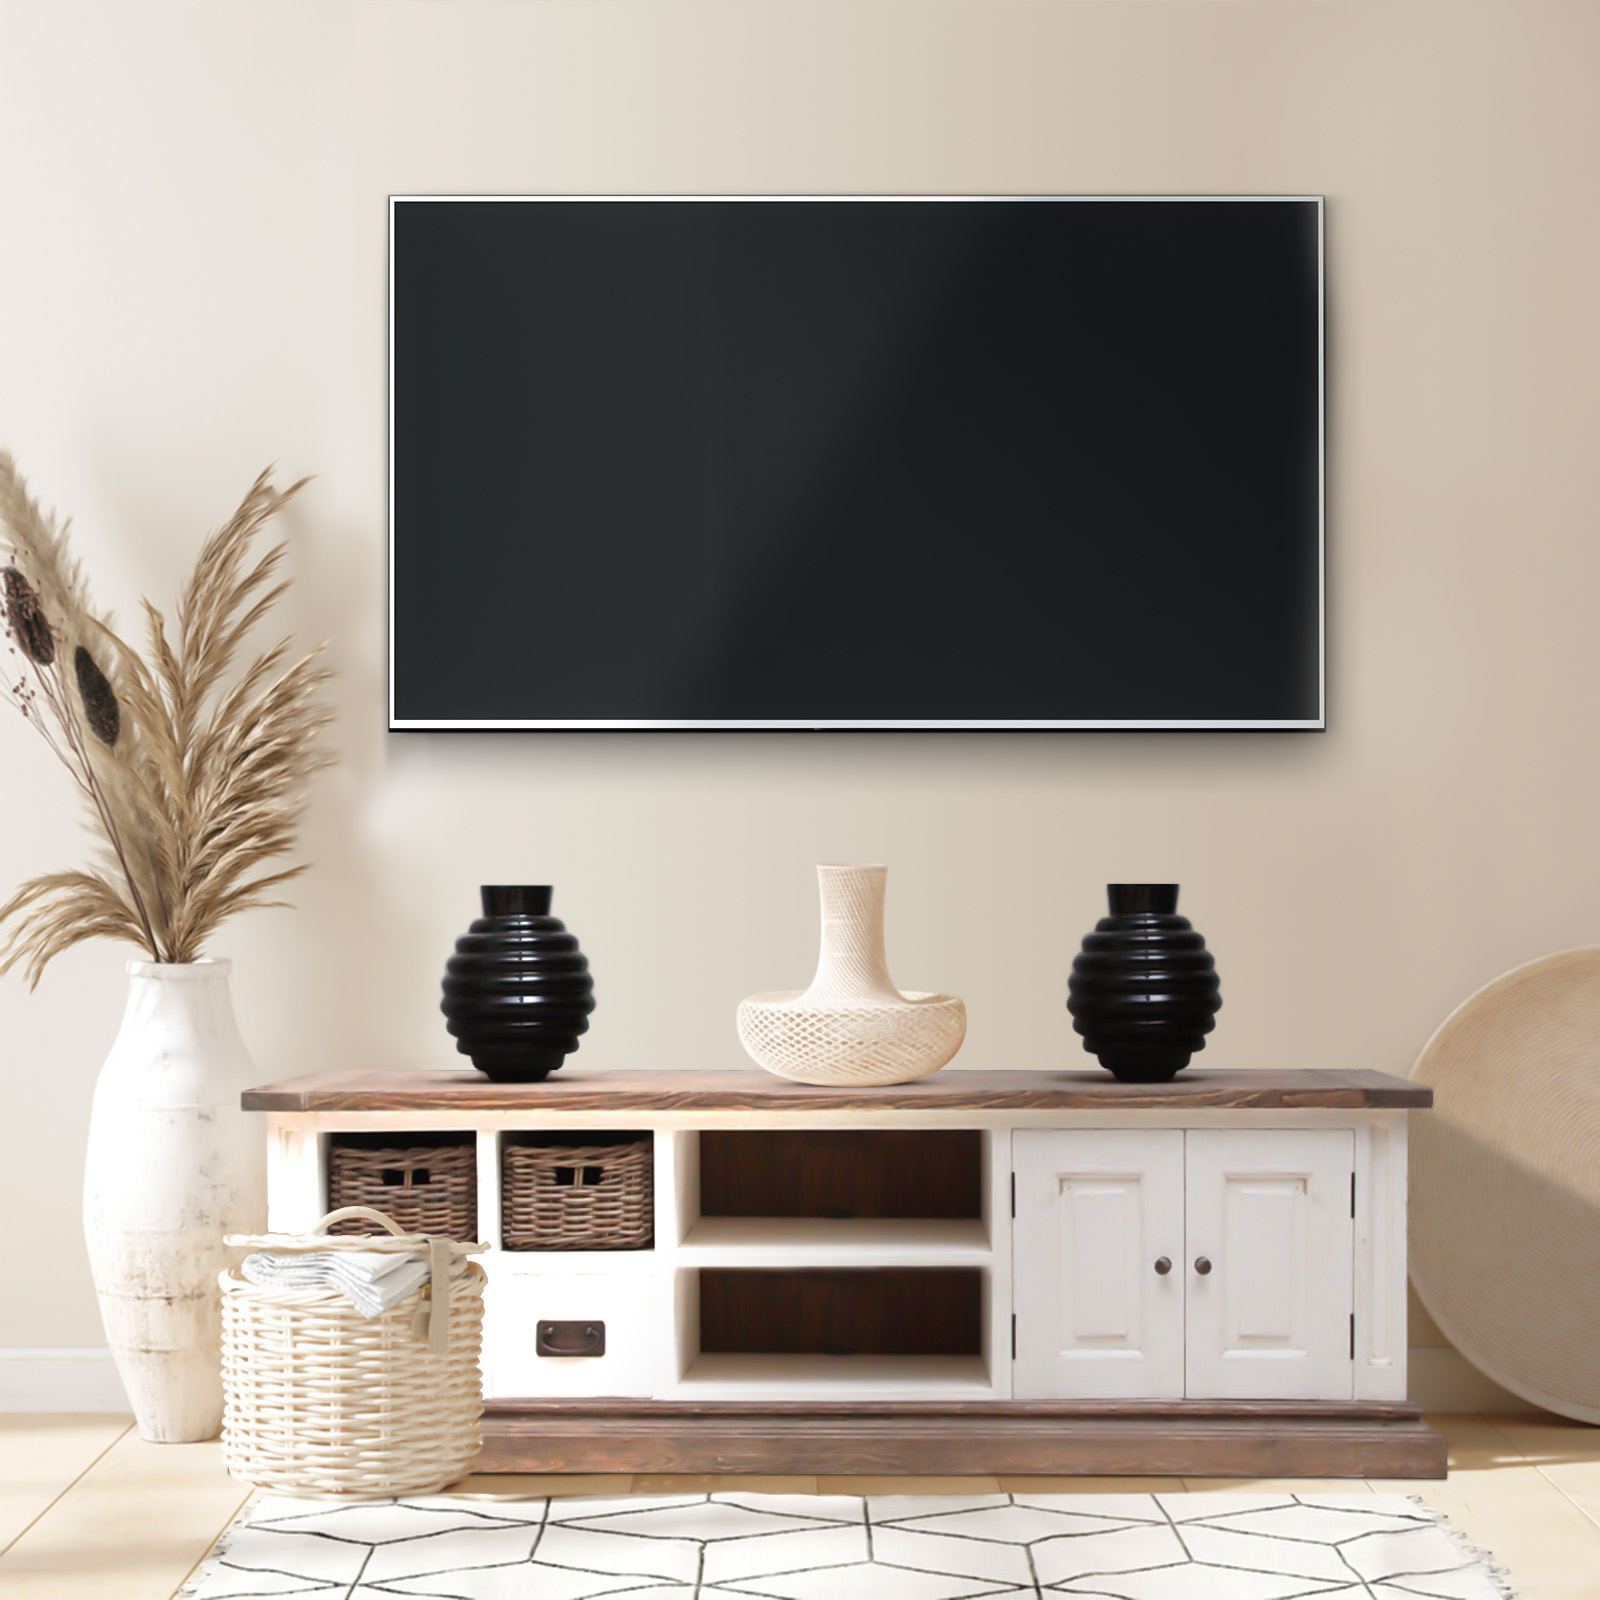 Meuble Tv Charme - Meuble Tv Vintage Teck Meuble Tv Pin Massif Kha Home Design[mjhdah]https://www.interiors.fr/media/405500__028835600_1220_12102011.jpg